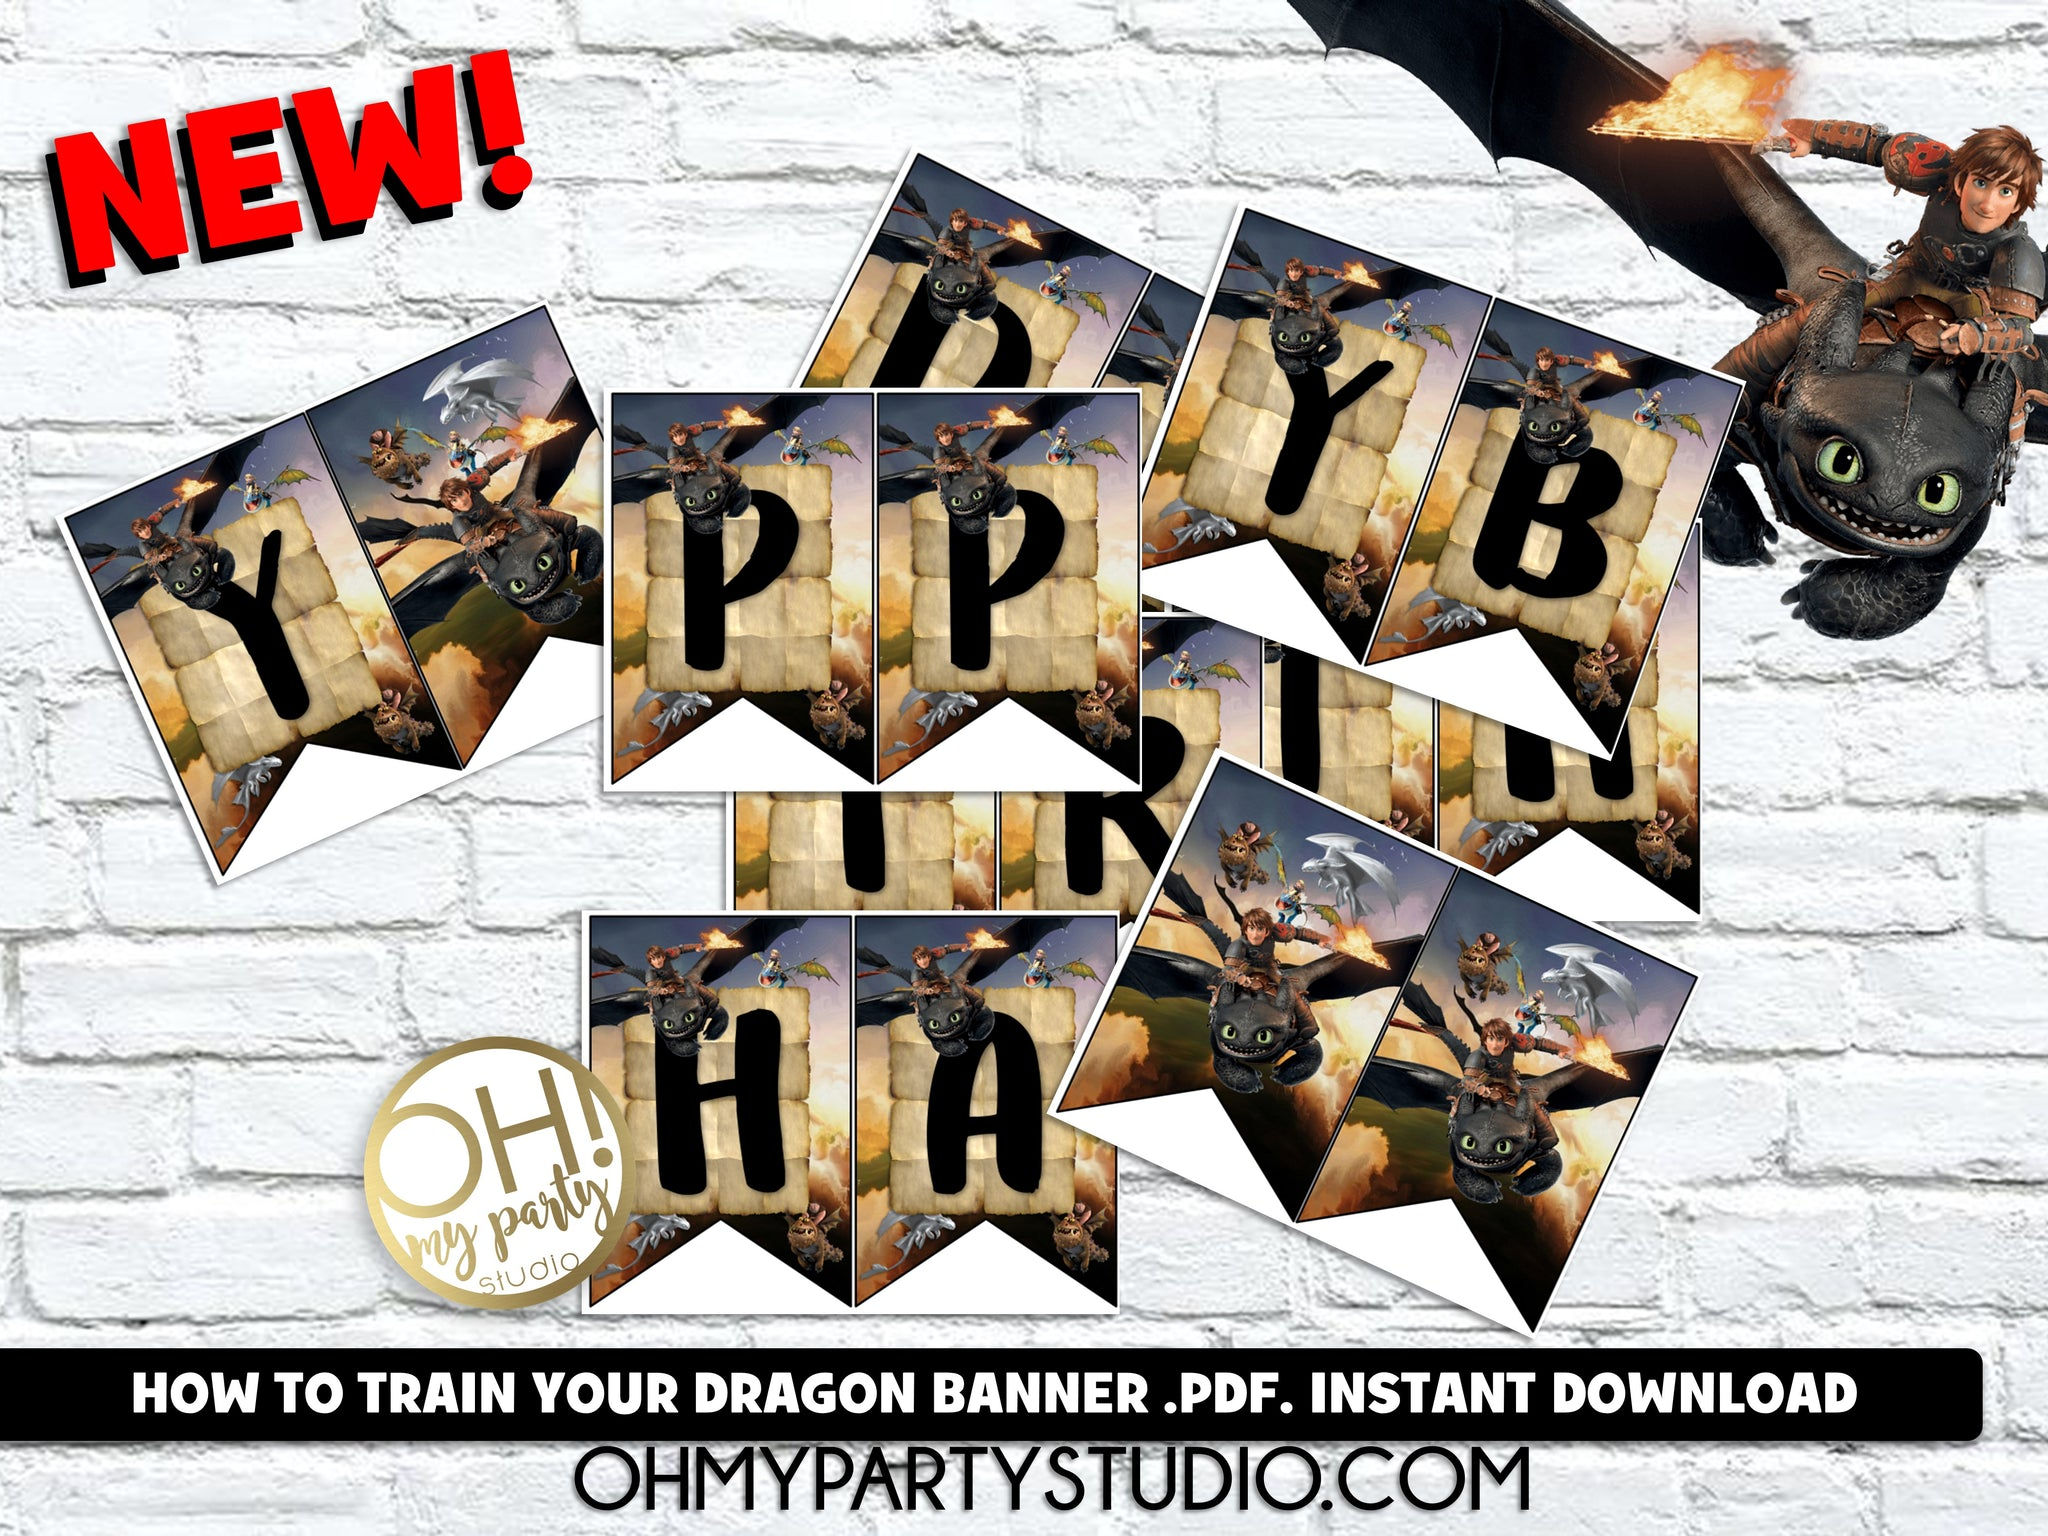 HOW TO TRAIN YOUR DRAGON BANNER INSTANT DOWNLOAD